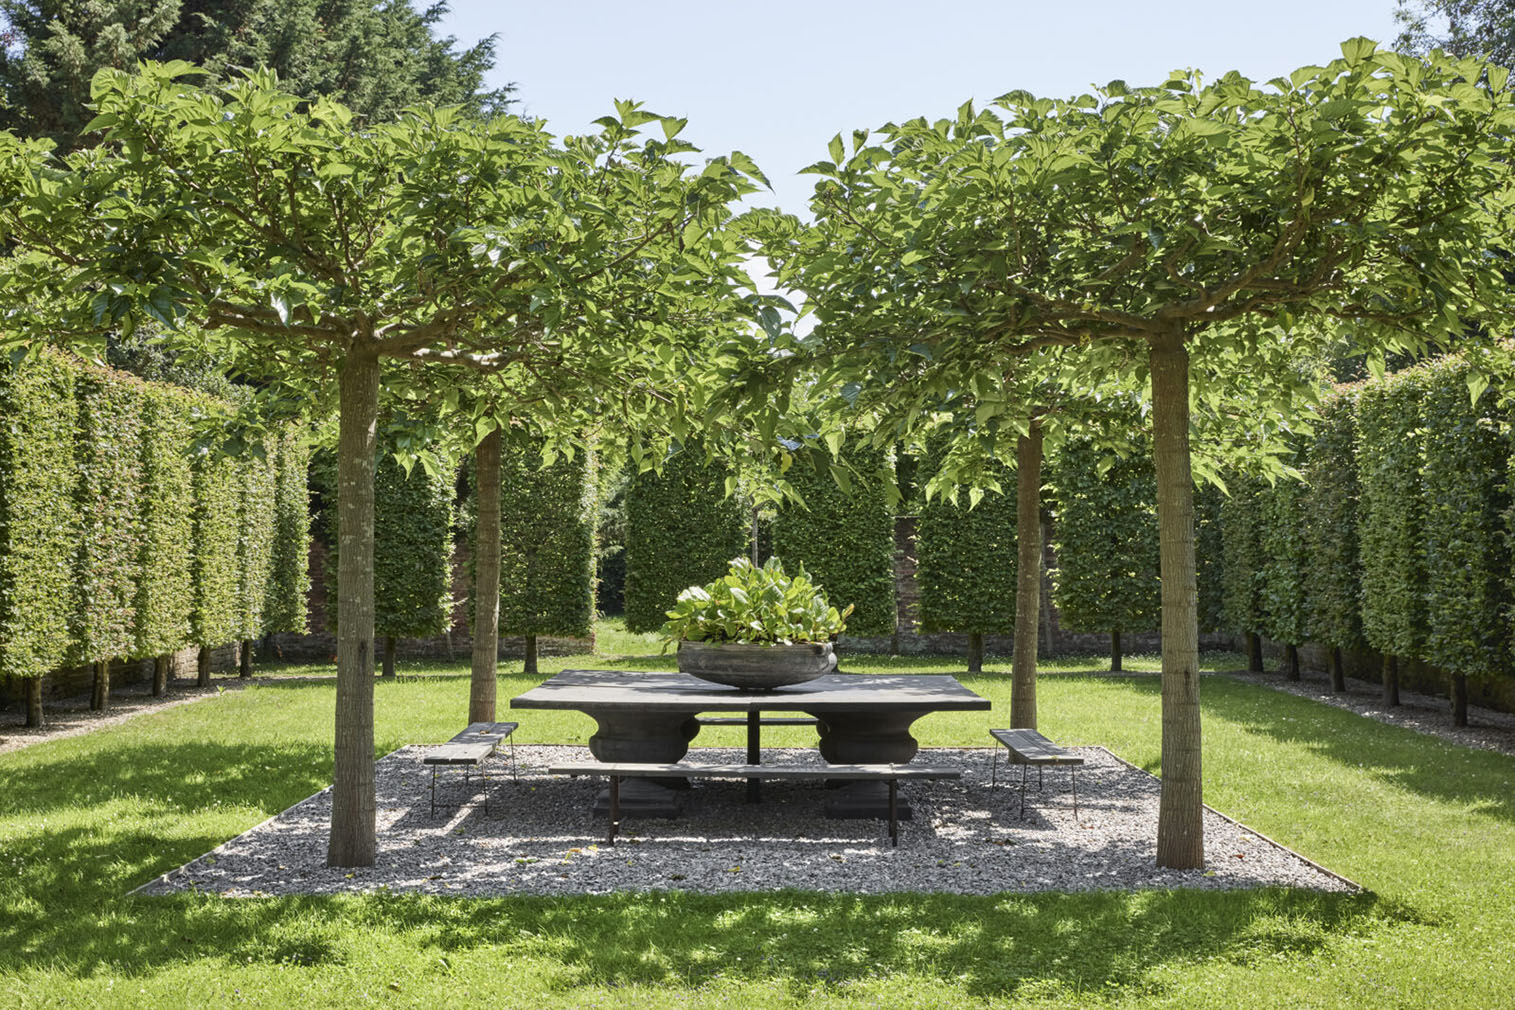 The English gardens are well maintained and offer a variety of outdoor spaces